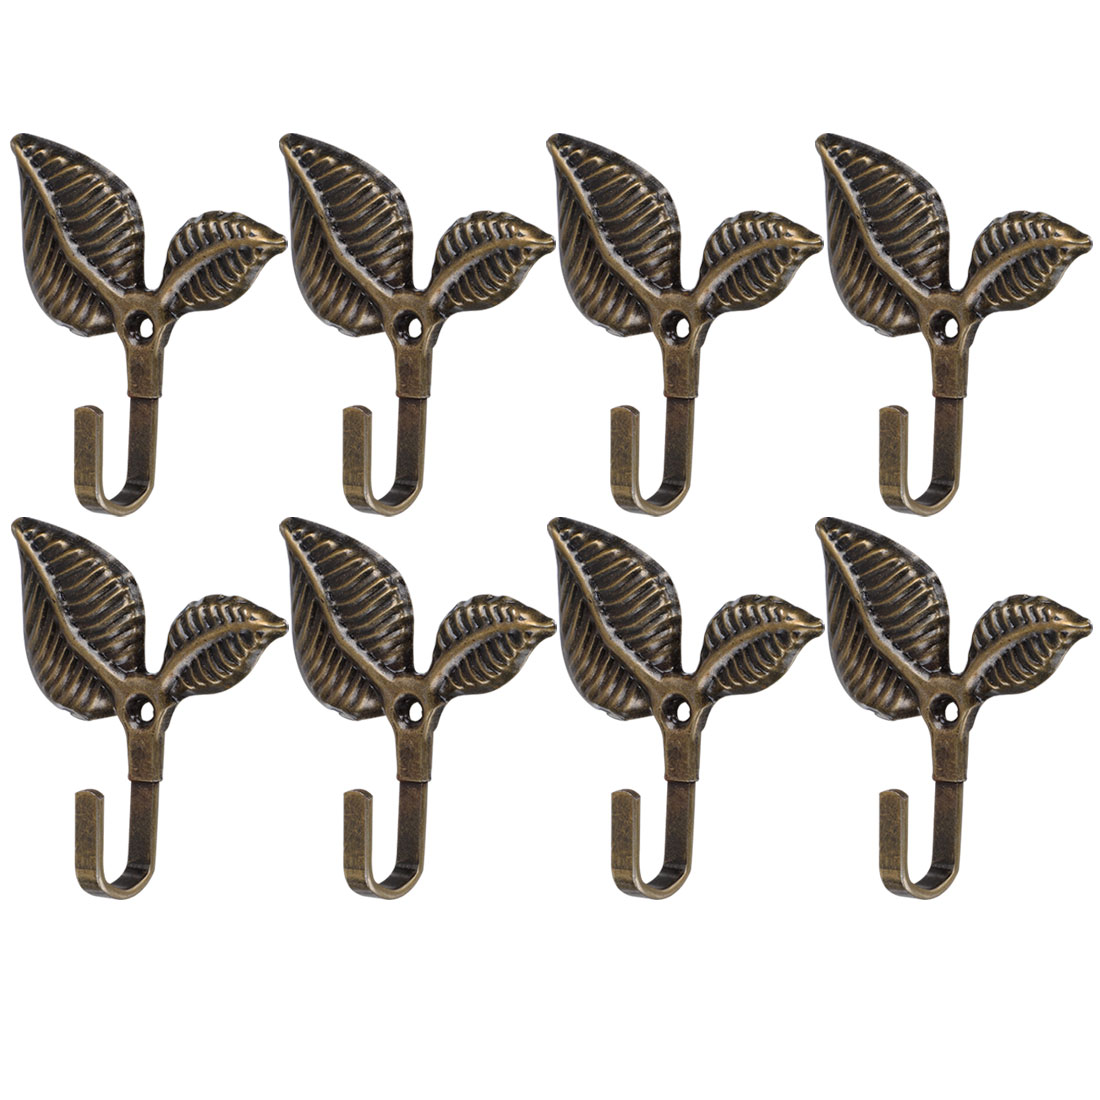 Curtain Tieback Hook Curtain Drapery Holdback For Curtains 8pcs Bronze Tone